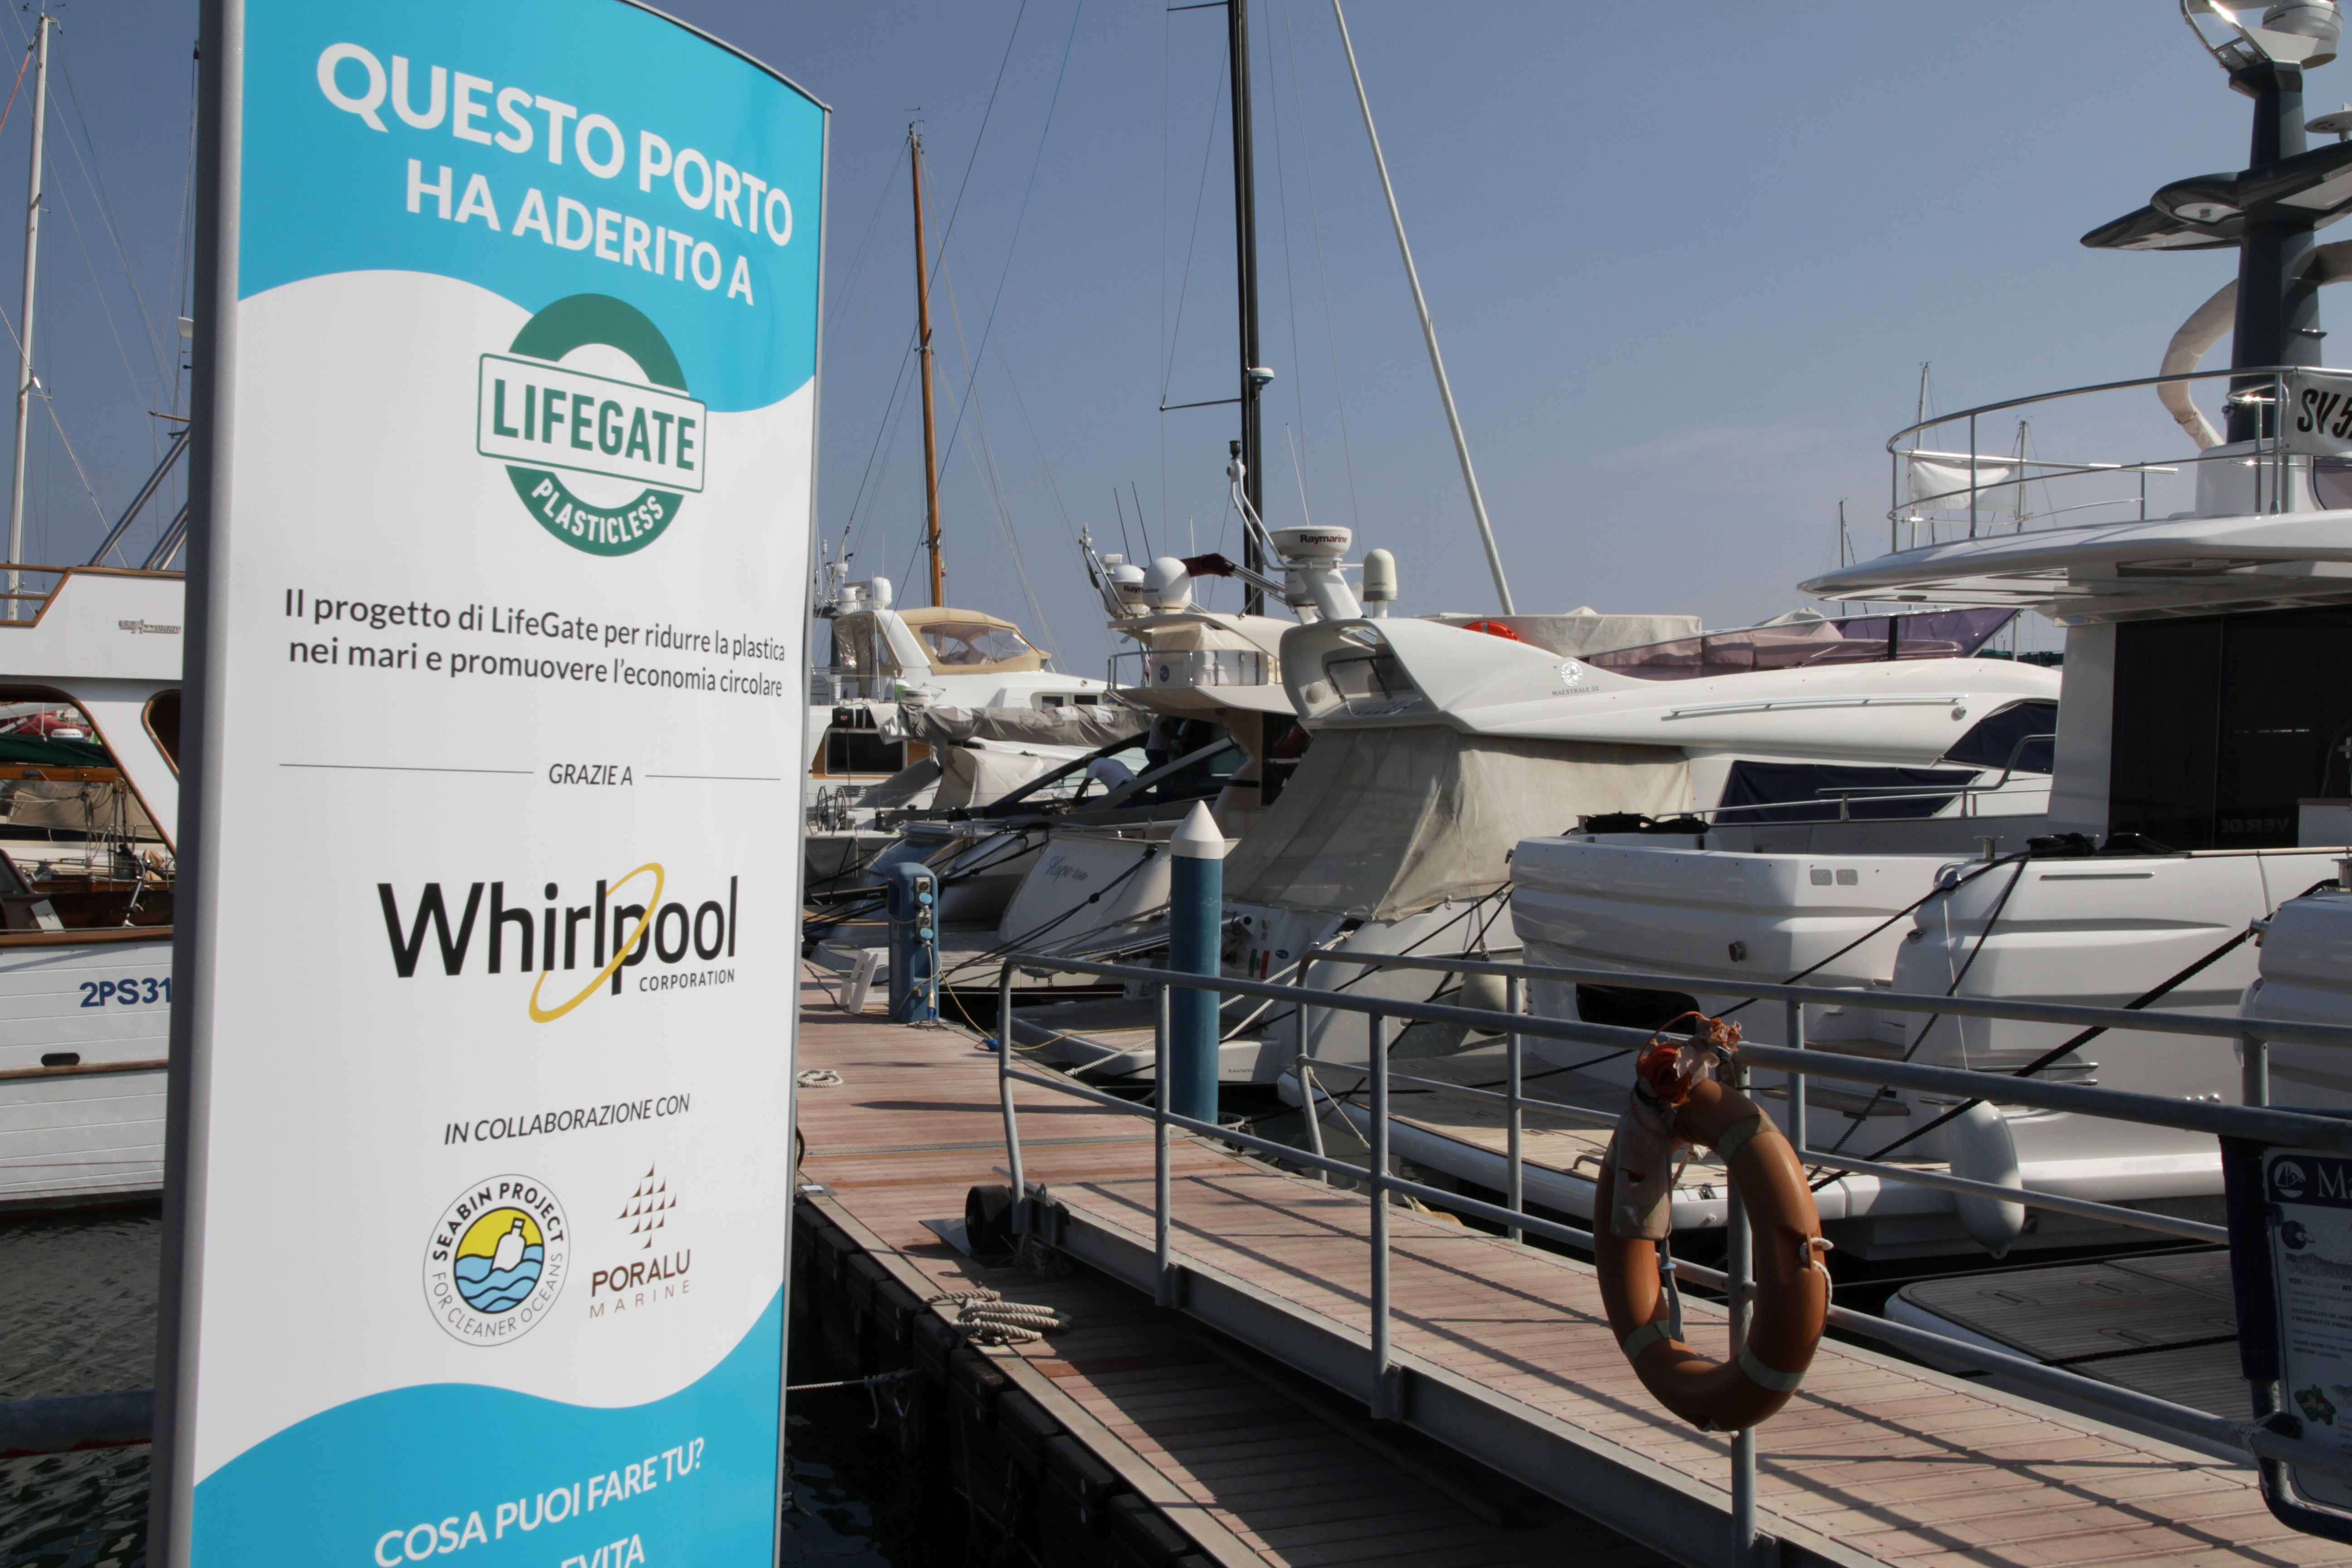 Whirlpool EMEA joins Lifegate #Plasticless